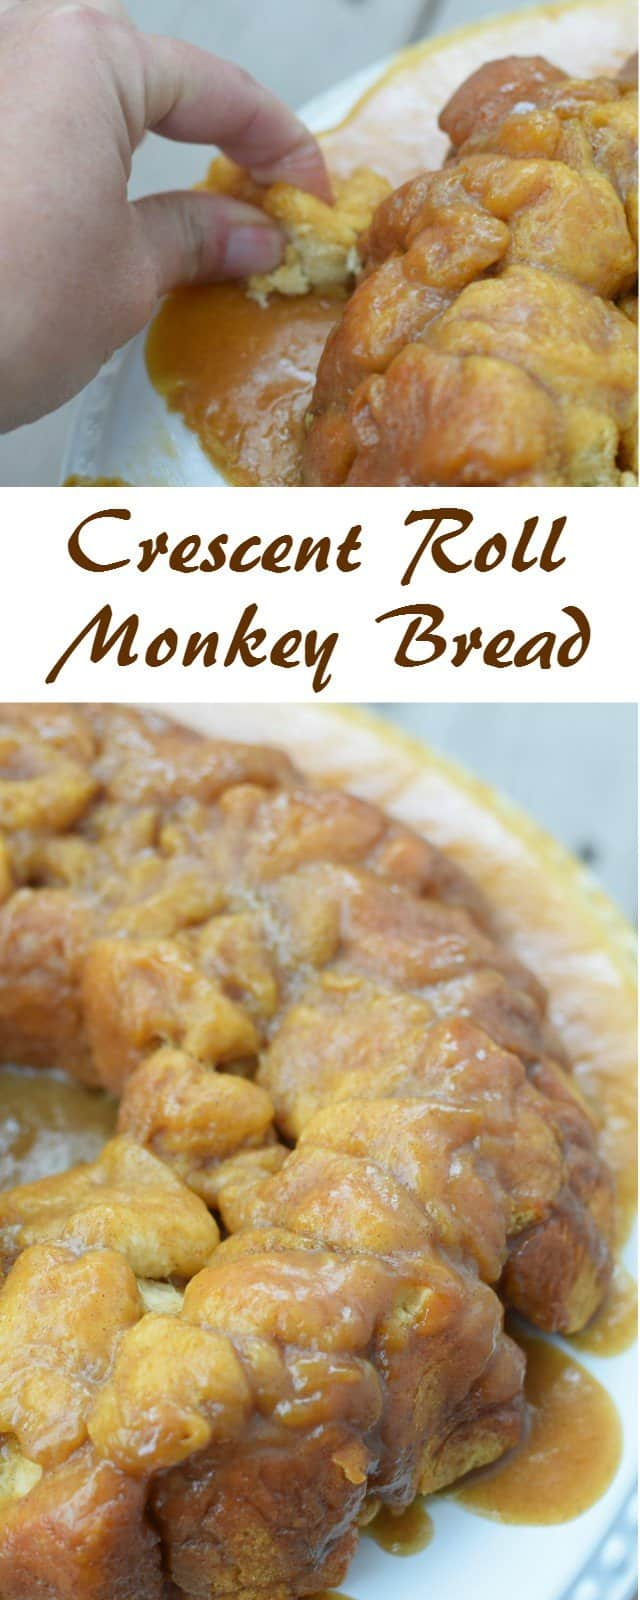 Delicious and easy crescent roll monkey bread recipe. This comes together quickly for a special occasion breakfast for company or a fun weekend treat for your family brunch.